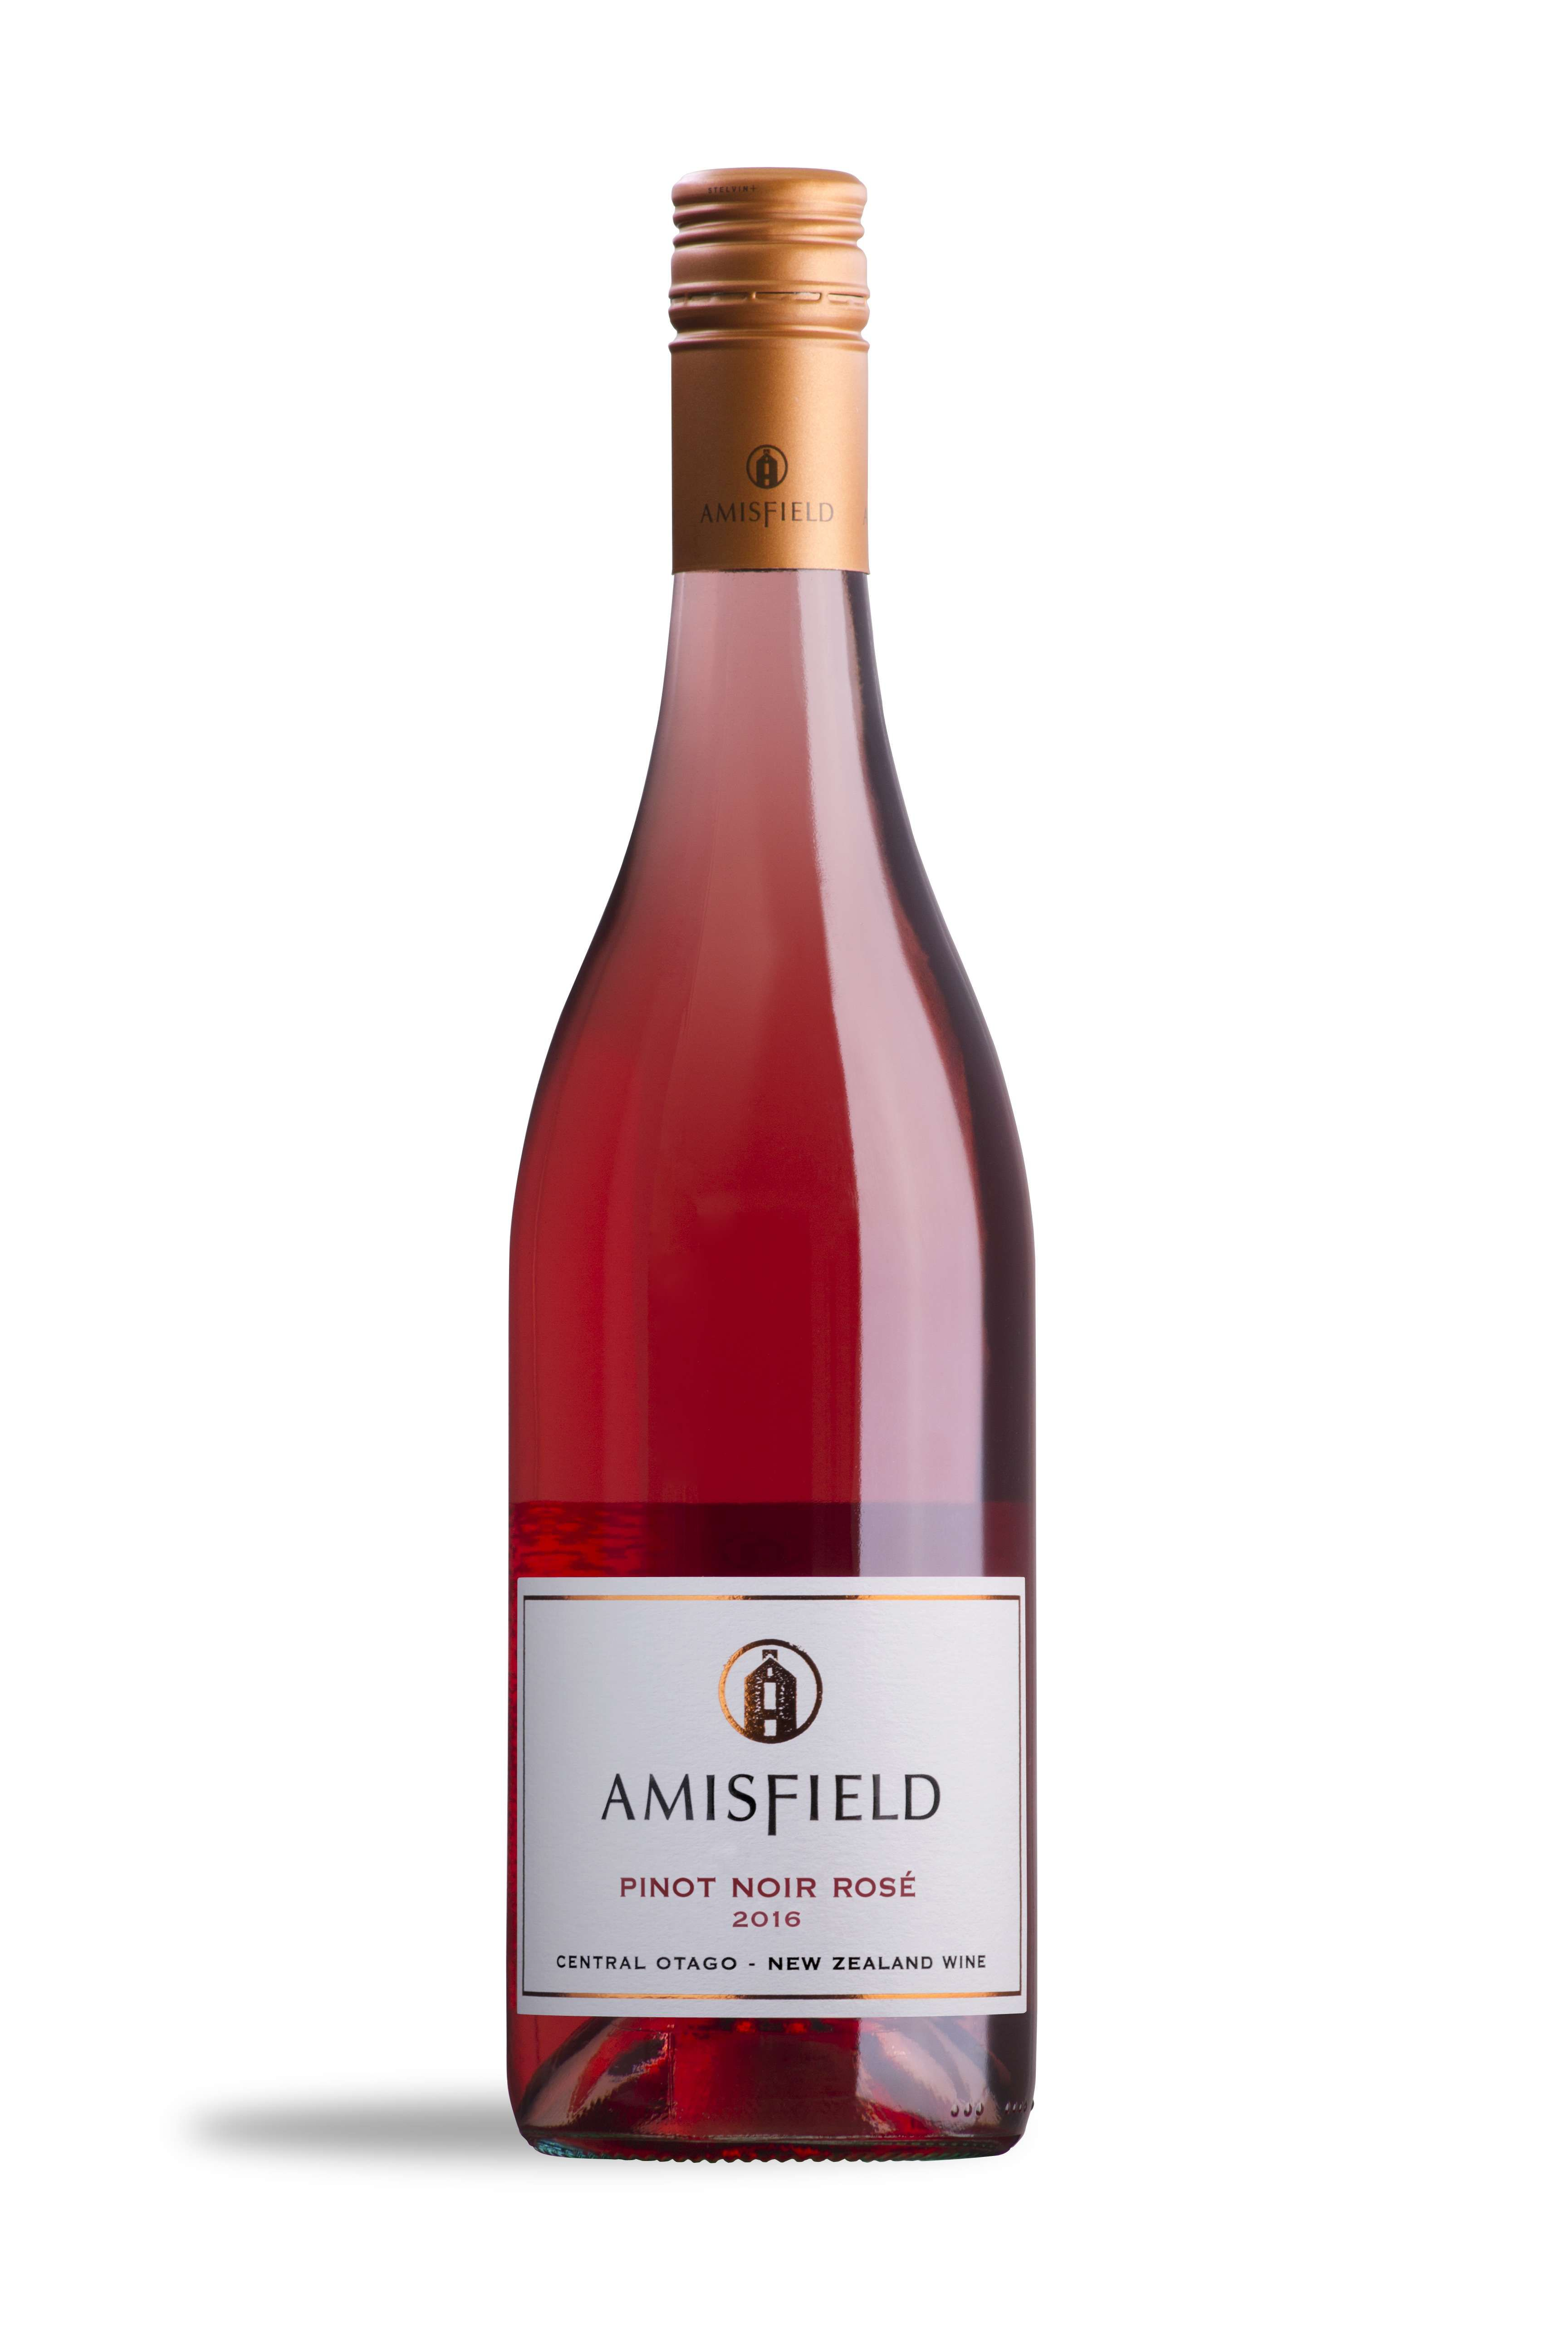 Amisfield Pinot Noir Rose 2016 Lusciously Pink With Fresh Watermelon And Summer Berry Aromatics Crisp Lingering Summer Fruit Flavours Pinot Noir Pinot Wines